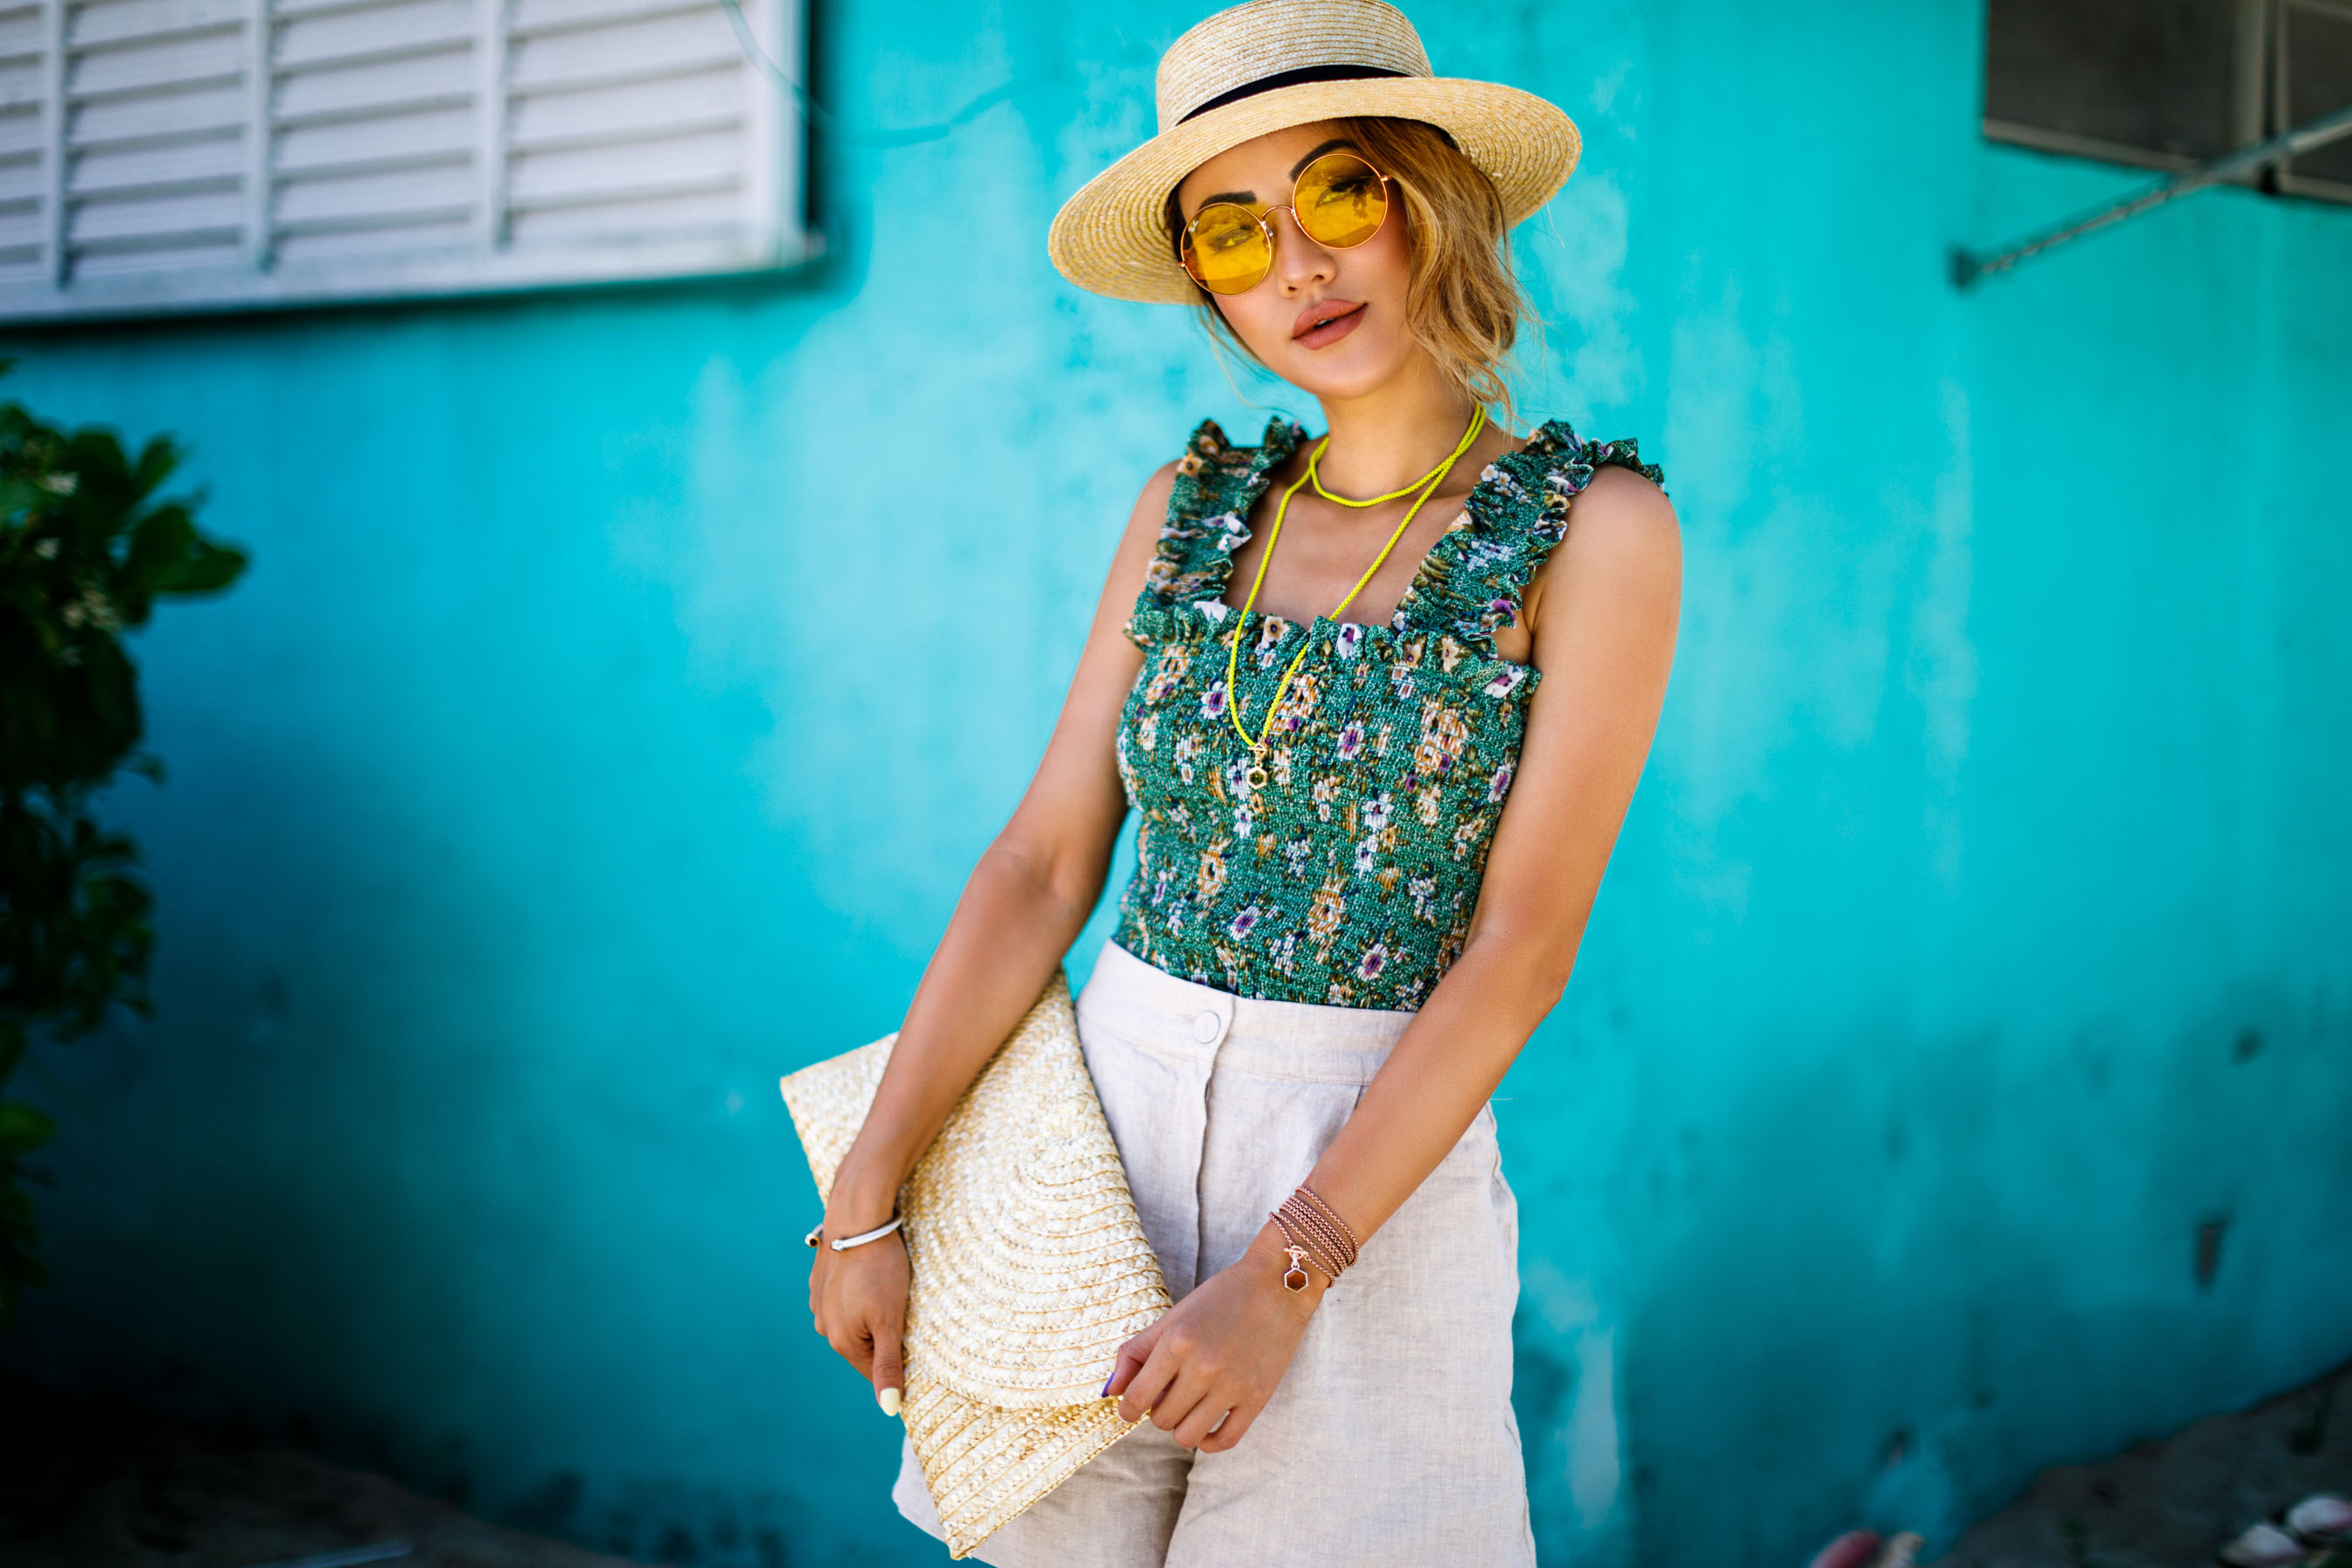 Simple But Stylish Mom Friendly Outfit Formulas - Linen shorts and smock top // NotJessFashion.com